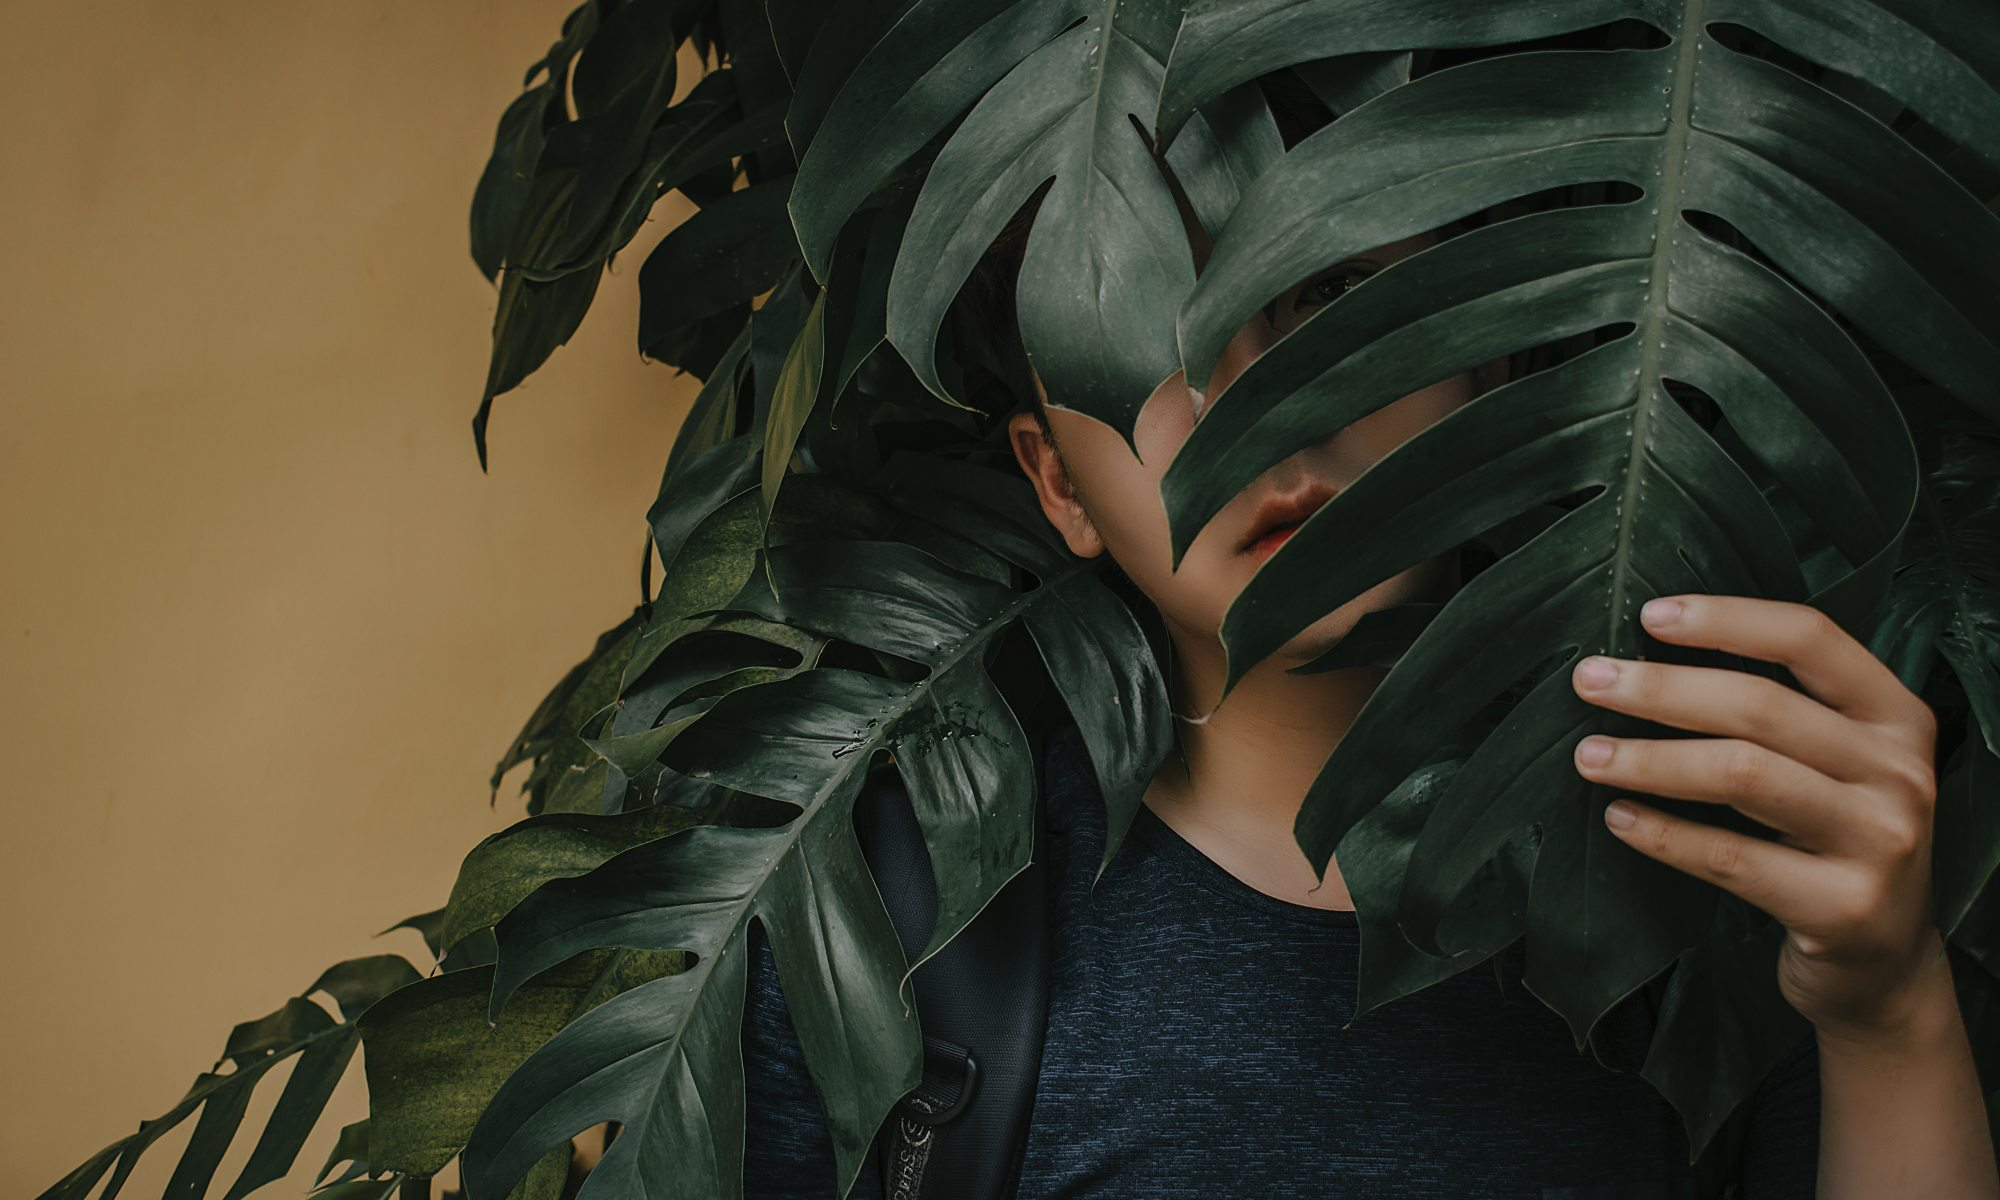 Young person behind leaves